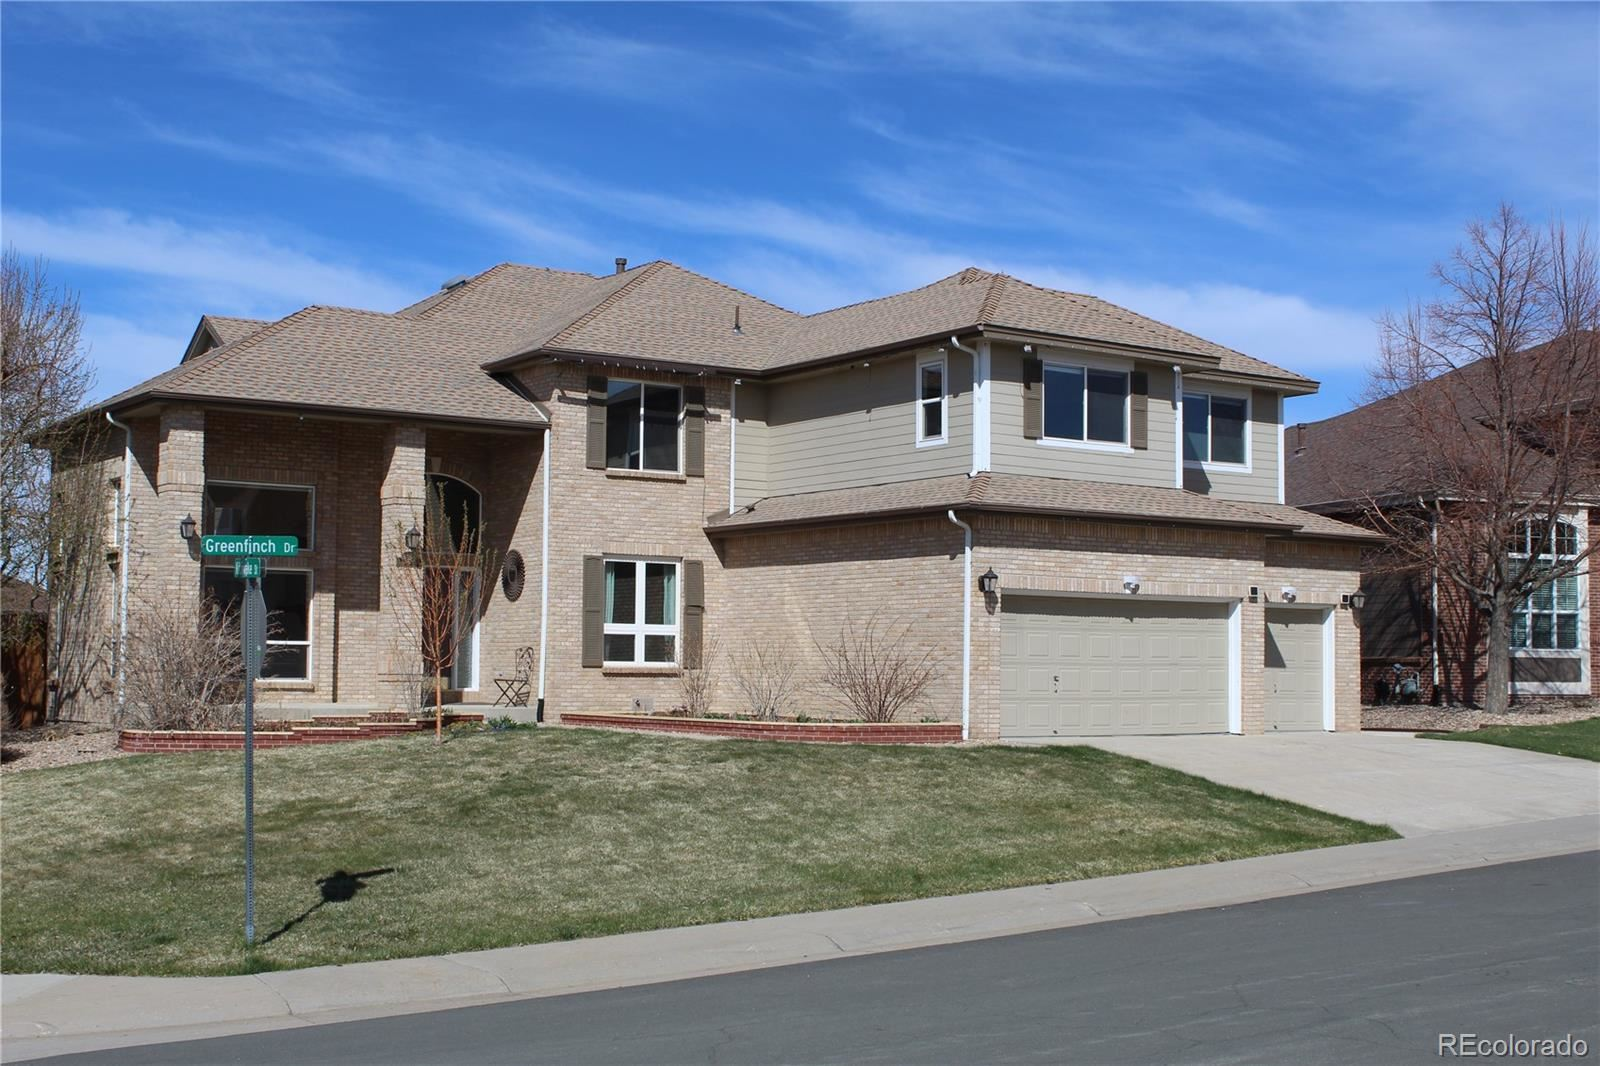 4217  Greenfinch Drive, Highlands Ranch, CO 80126 - #: 7878741